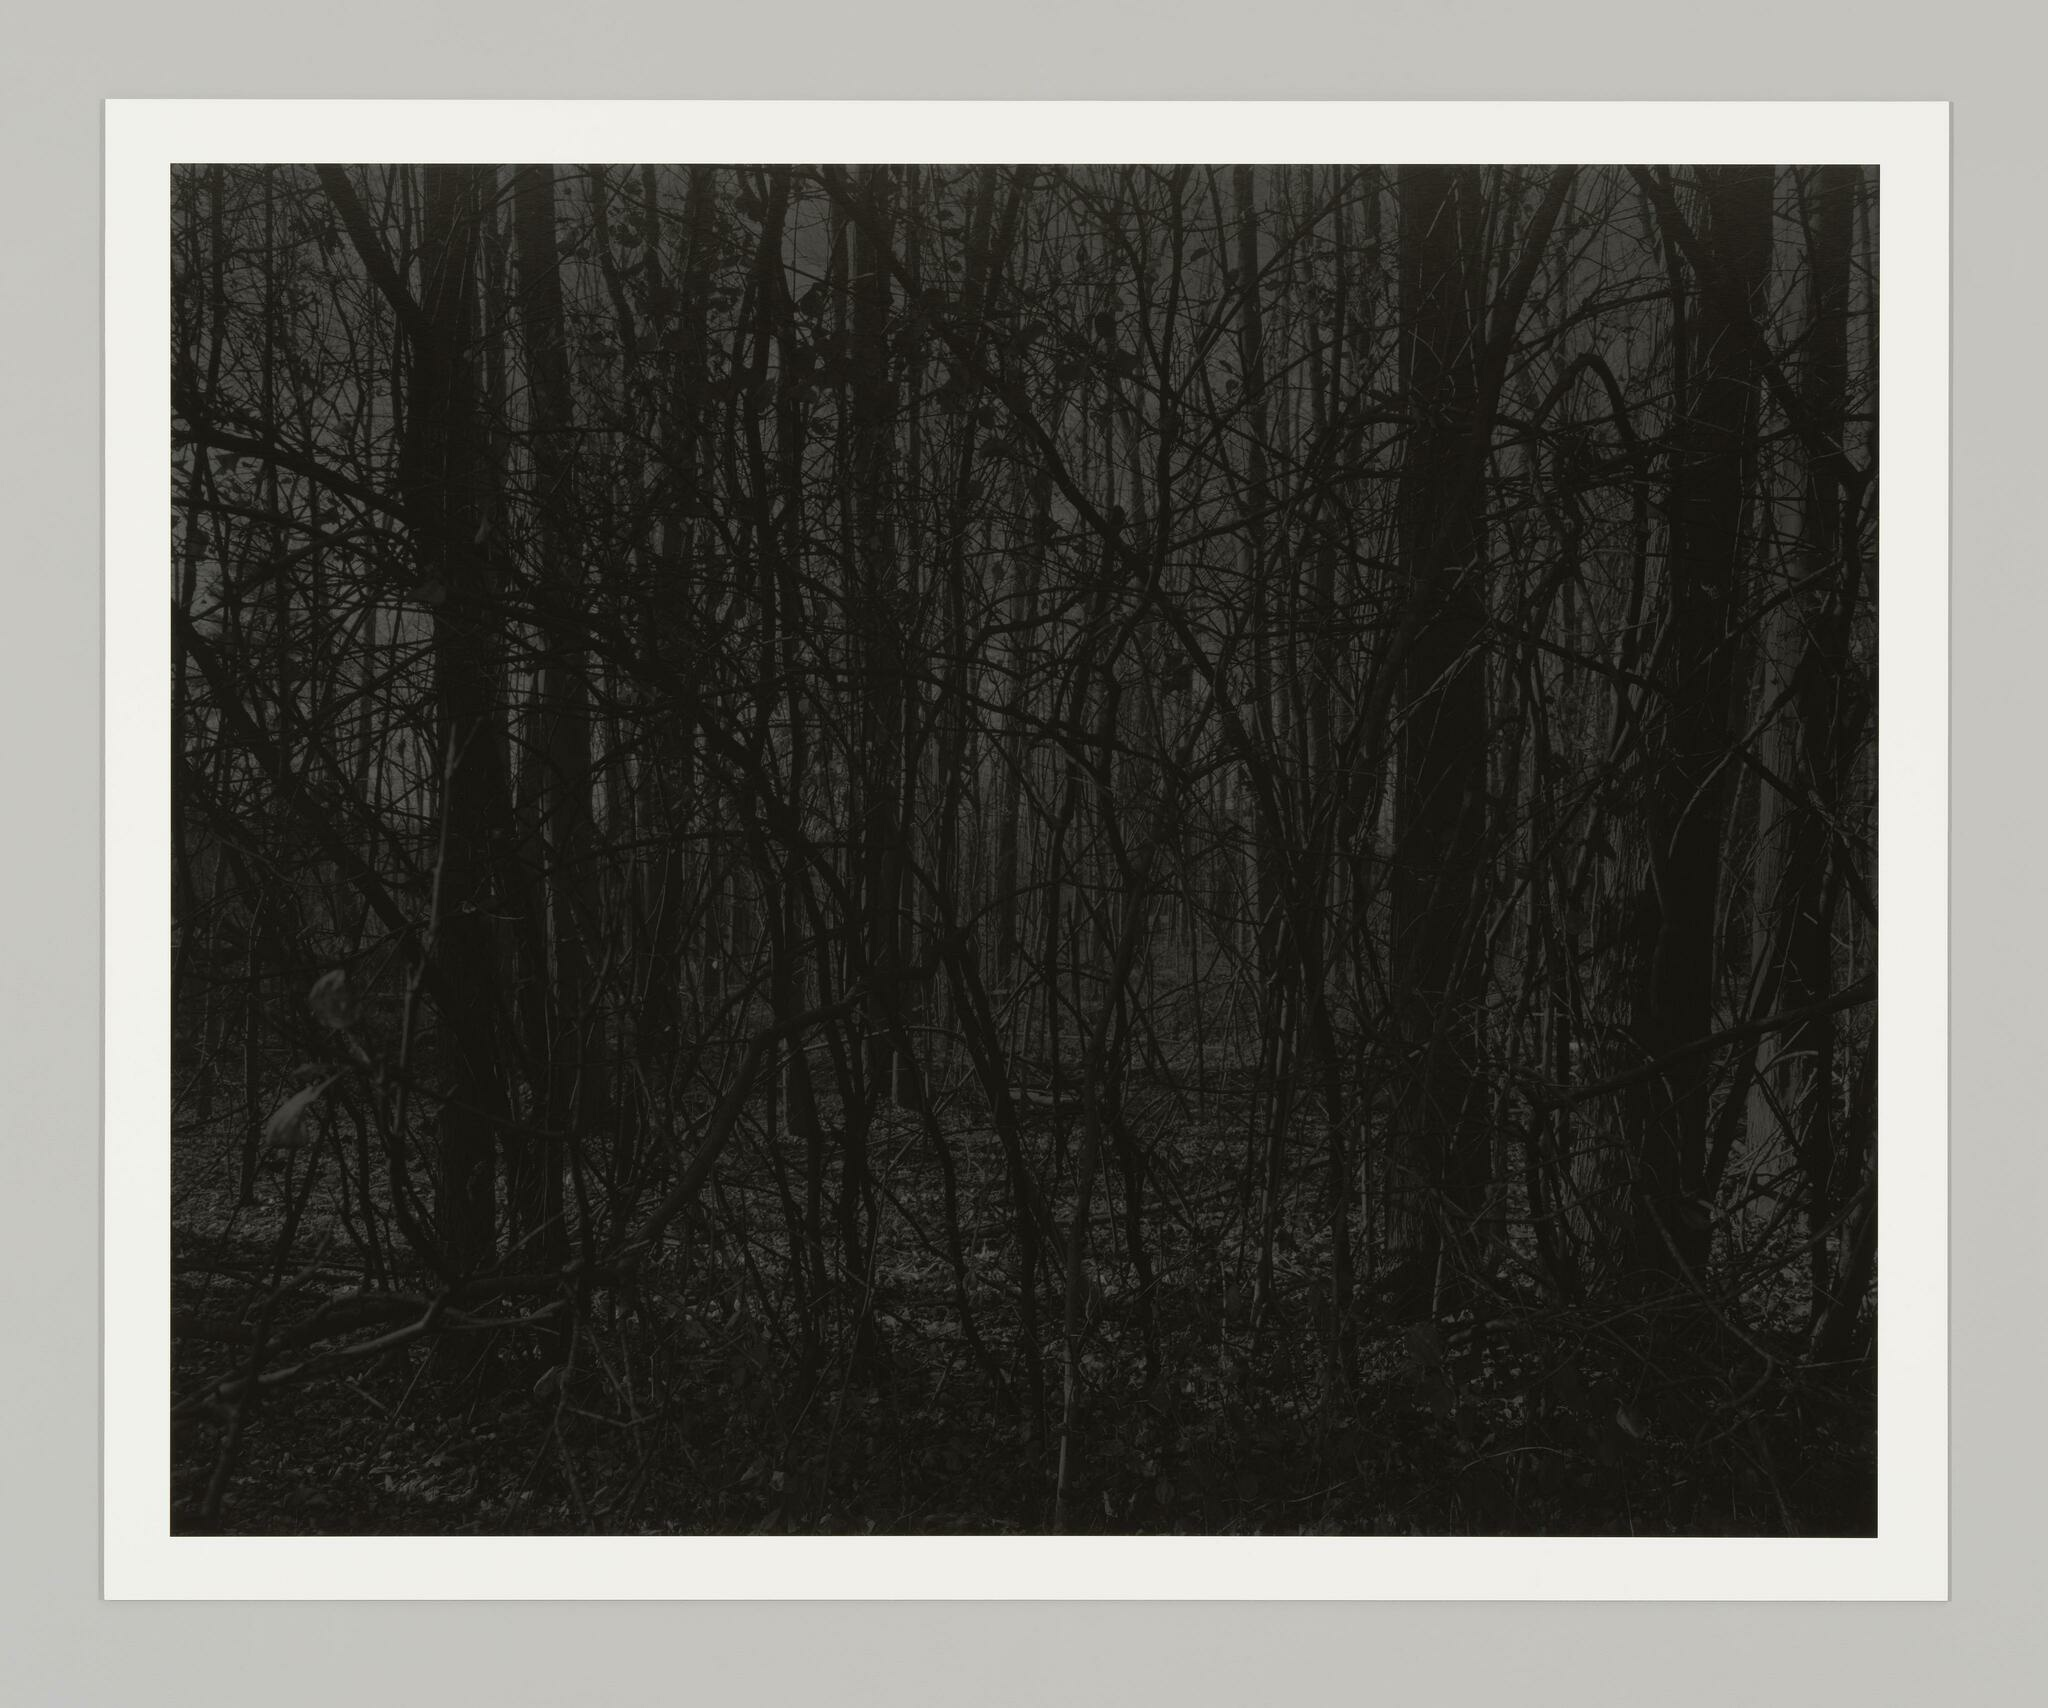 A tangle of black, bare trees crosshatch and animate the surface of a gray, nocturne forest scene.